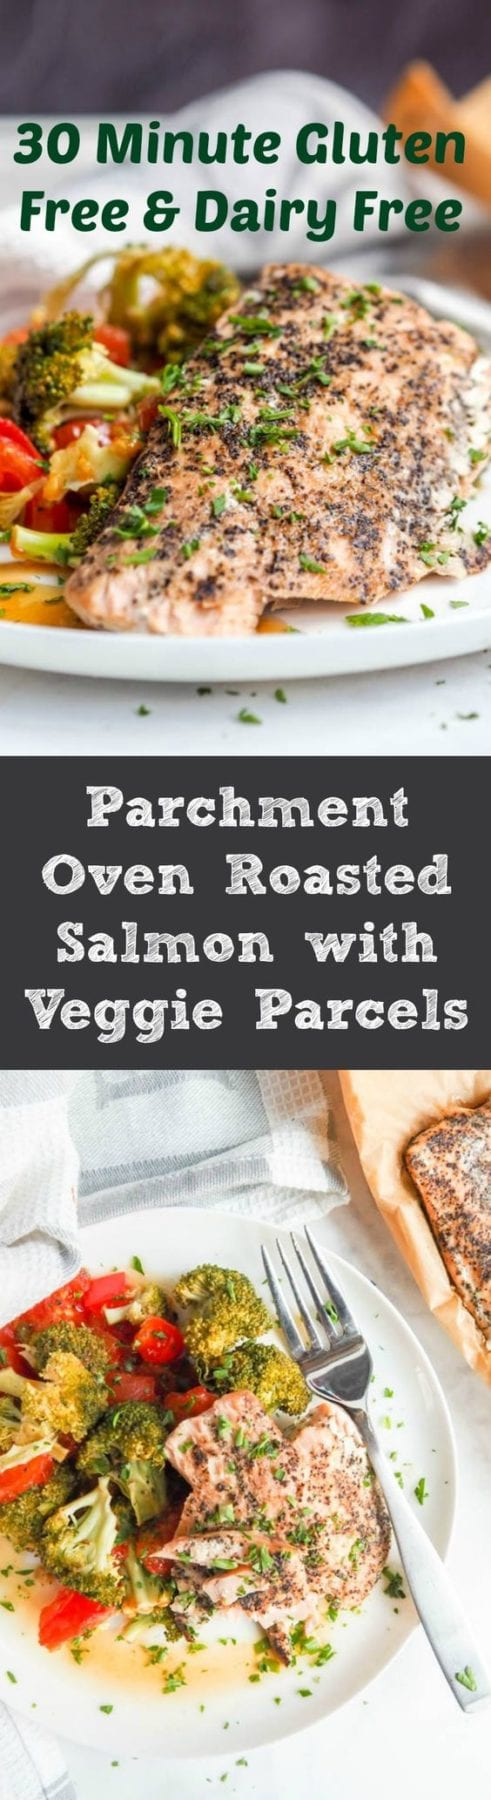 Dinner doesn't get simpler than parchment packet oven roasted salmon and broccoli, red pepper and tomato parcels. Gluten-Free, Dairy-Free, High Protein and Low Carb. A healthy dinner with minimal prep. #dinner #fish #healthy #easy